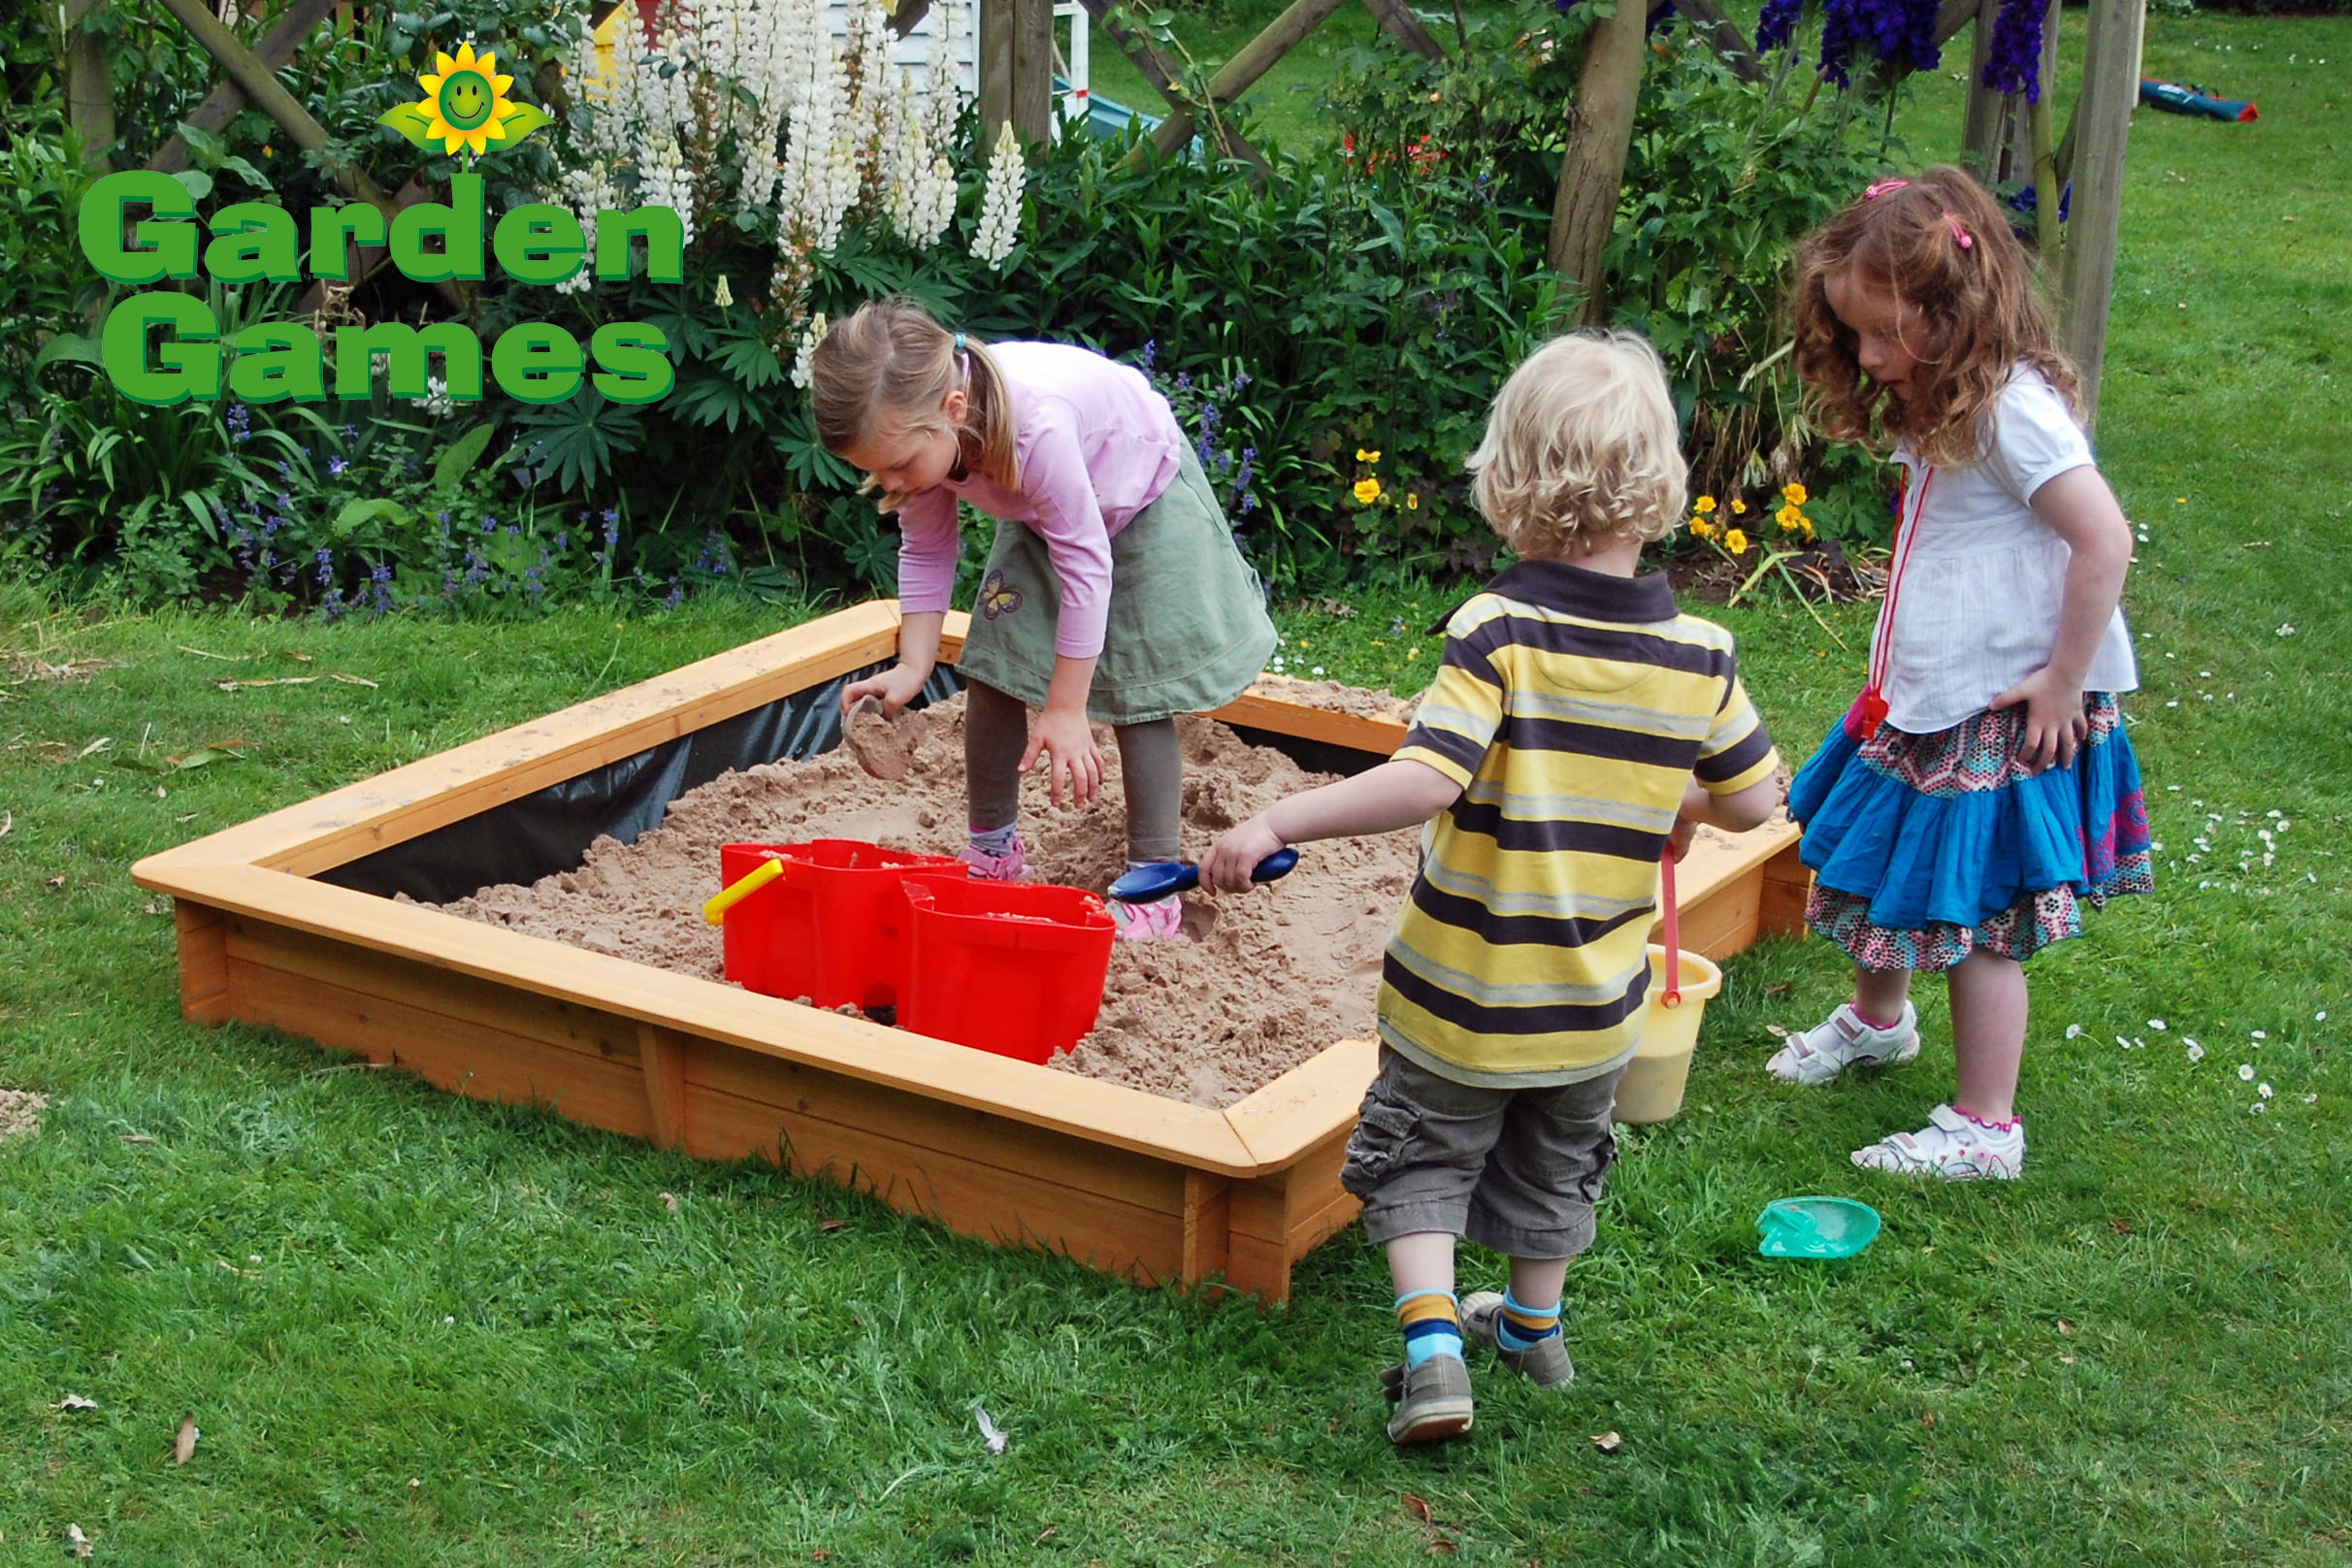 Adventure Zone Toys Garden Games 1.5m Square Sandpit